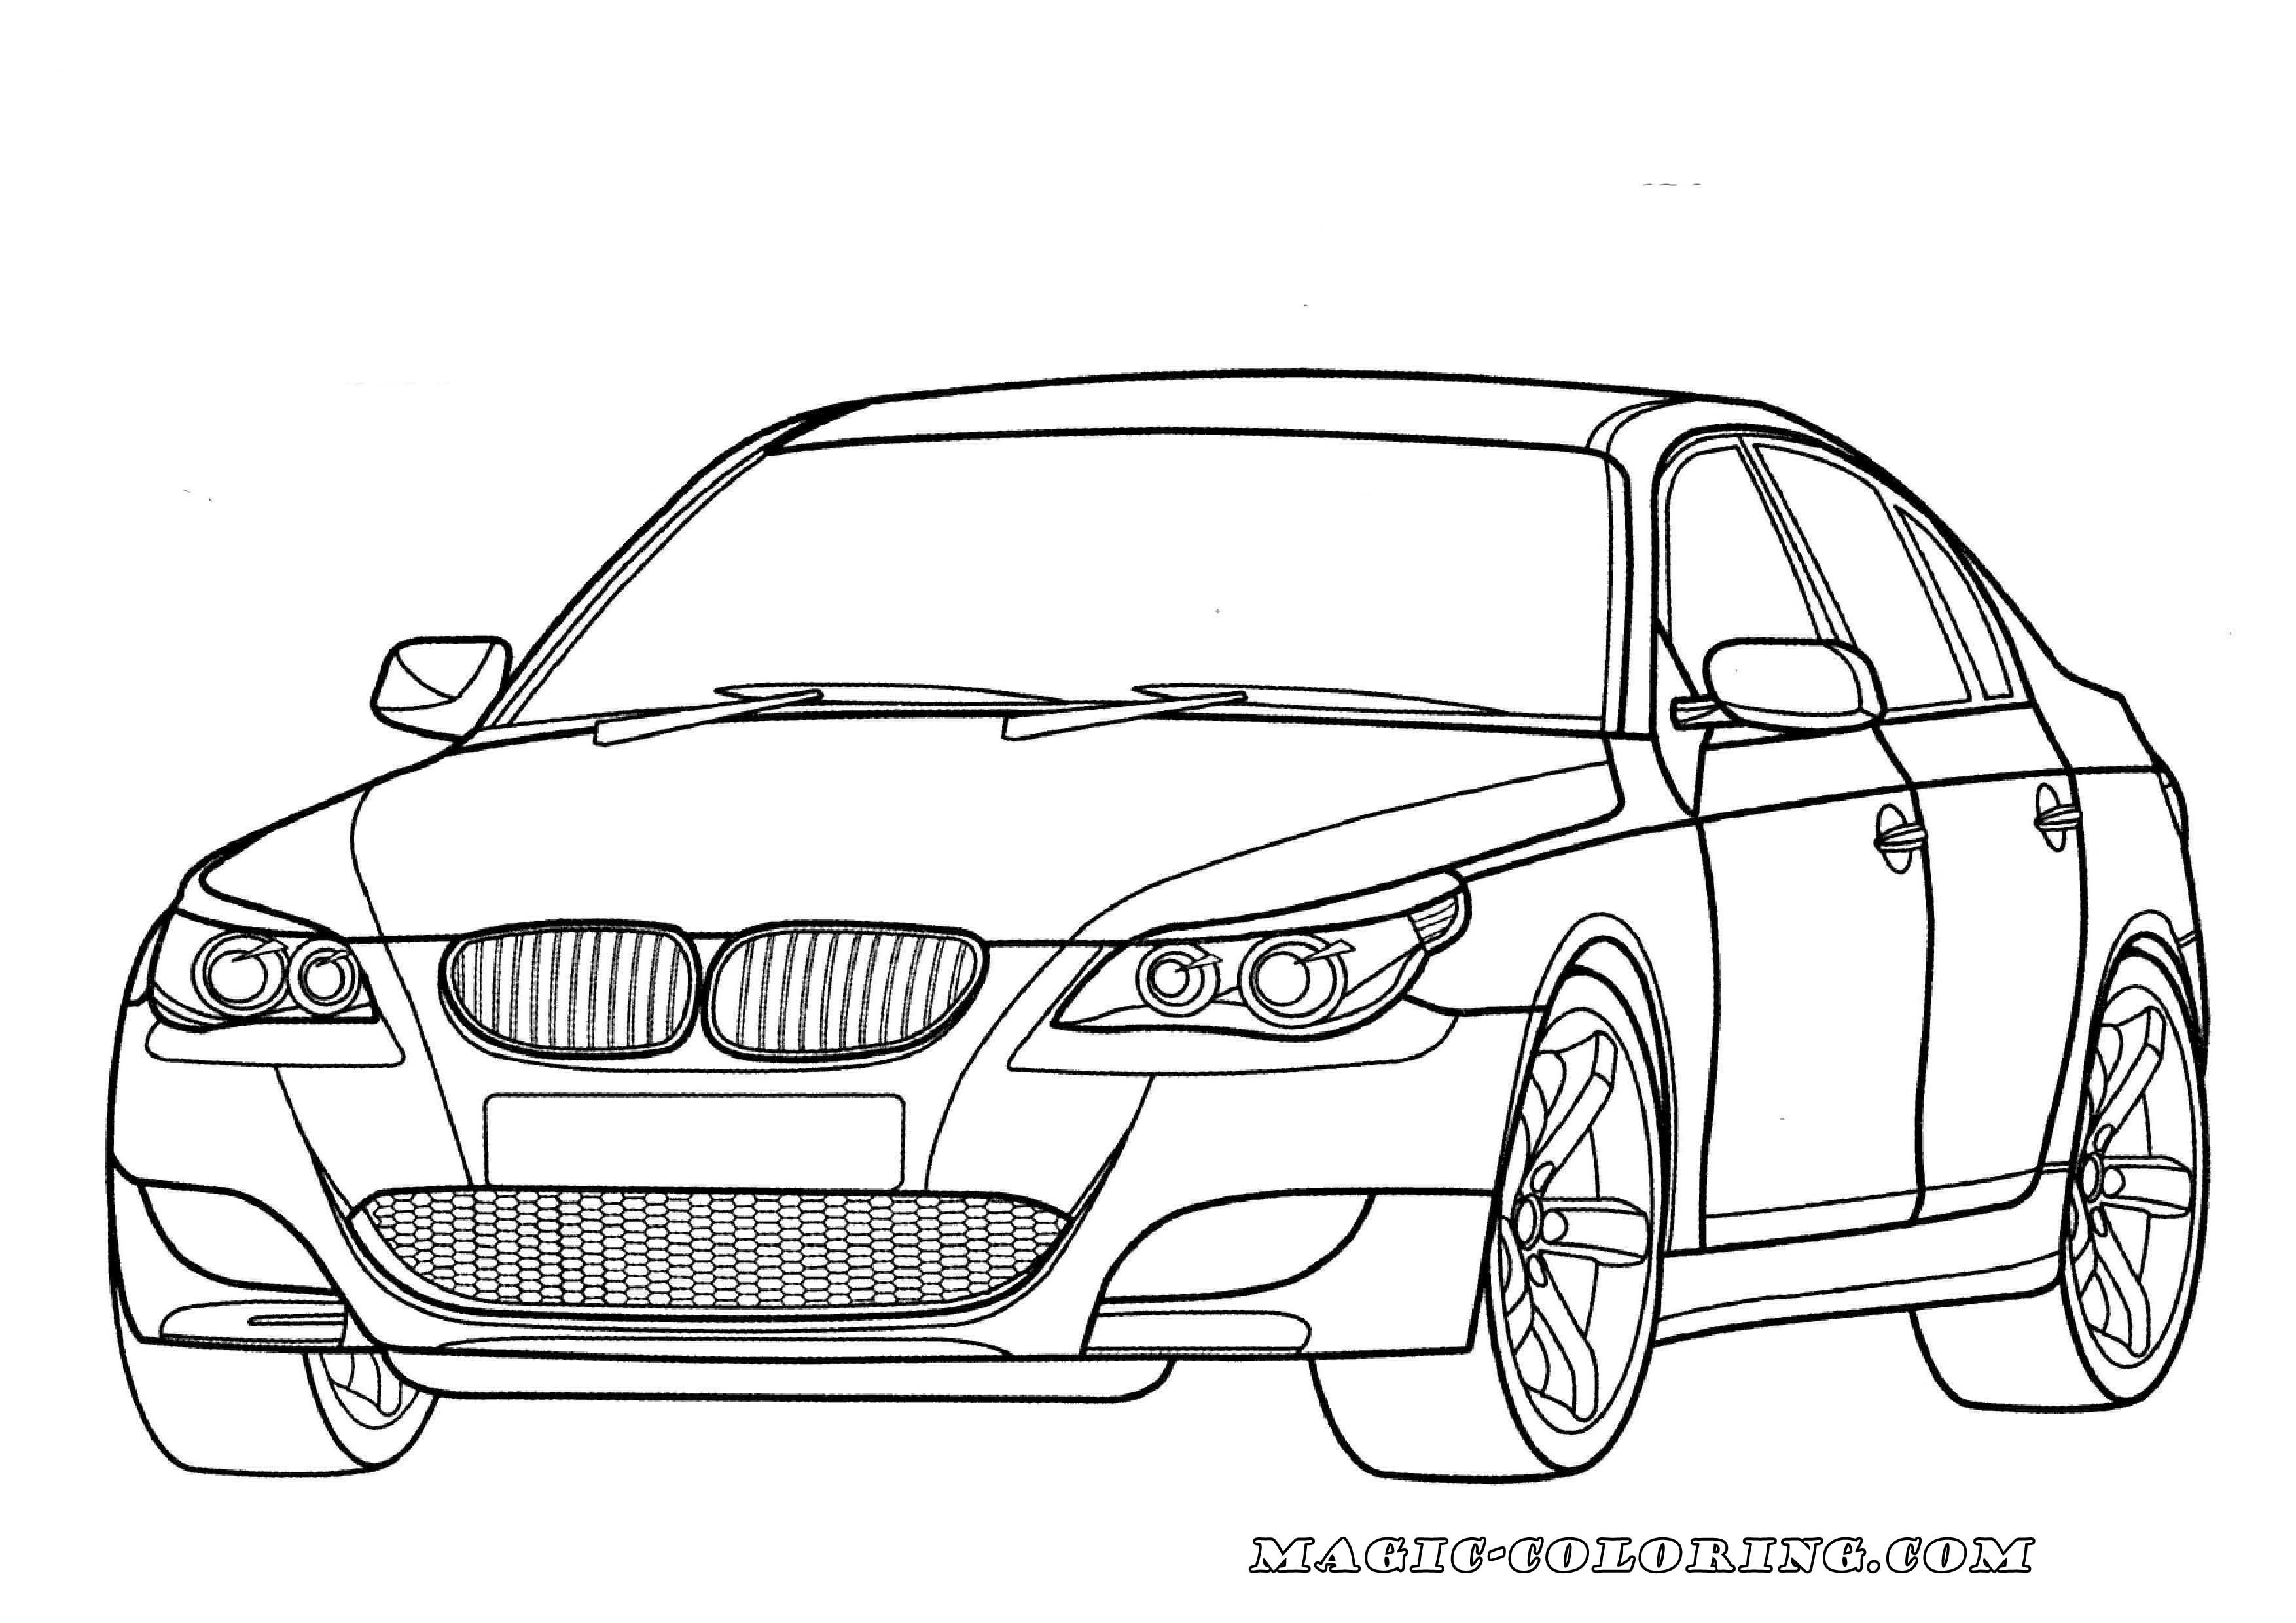 Bmw M5 E60 Coloring Page Cars Coloring Pages Coloring Pages Bmw M5 E60